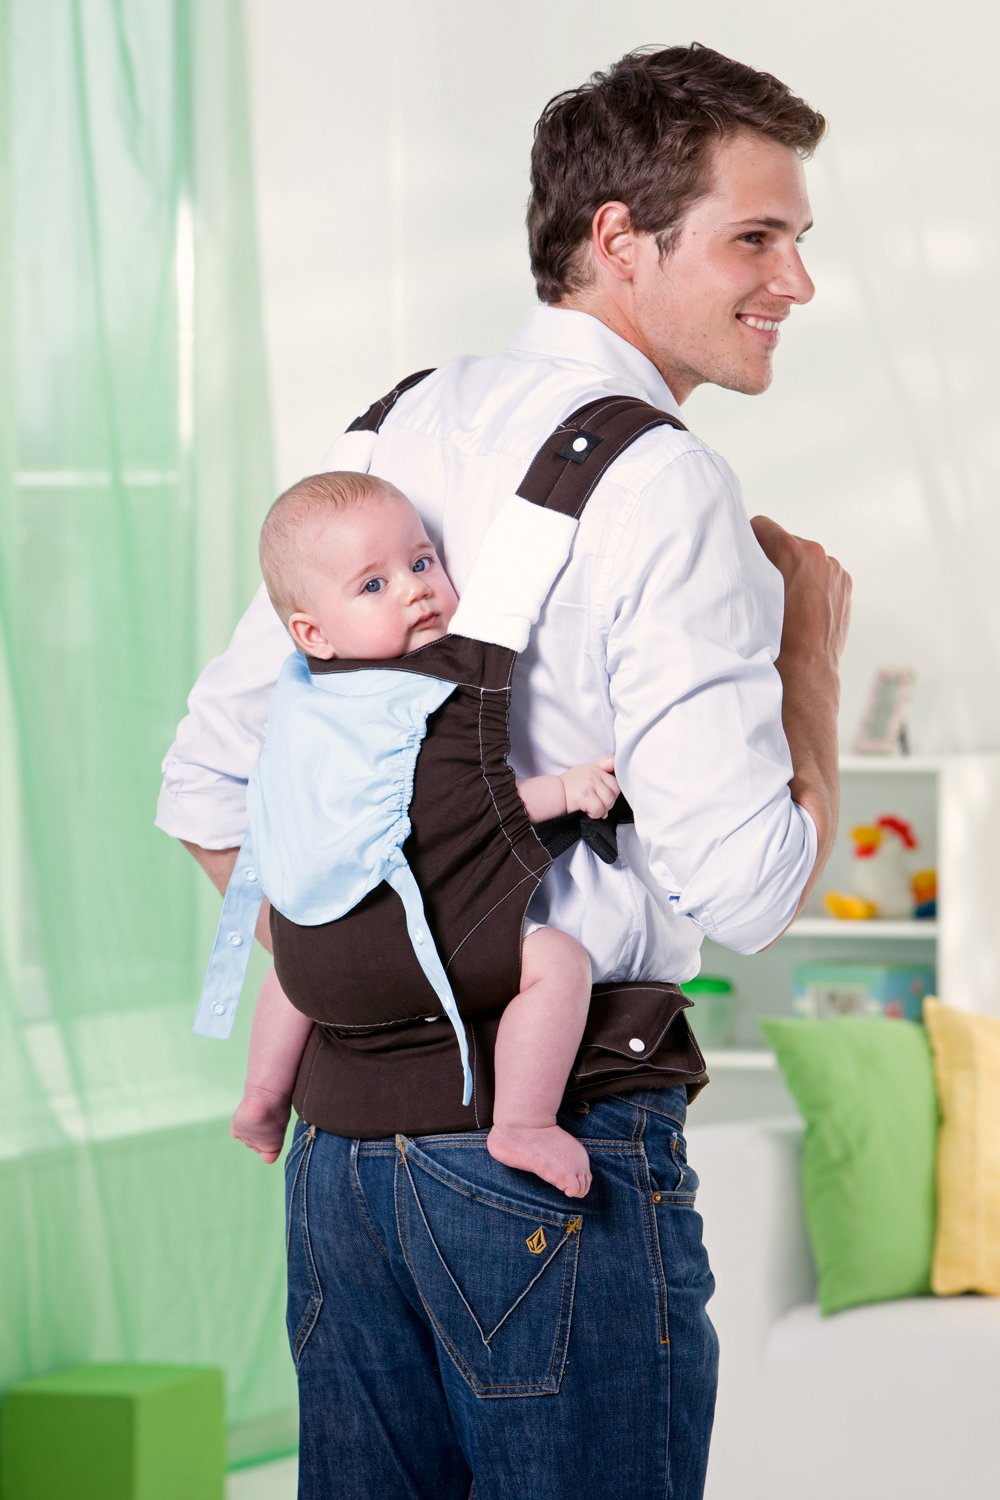 Amazonas Baby Smart Carrier - Earth AMAZONAS Waist belt length: 78 - 145 cm Flexible bridge: approx. 26 - 33 cm Load capacity: max. 3.5 - 15 kg 4